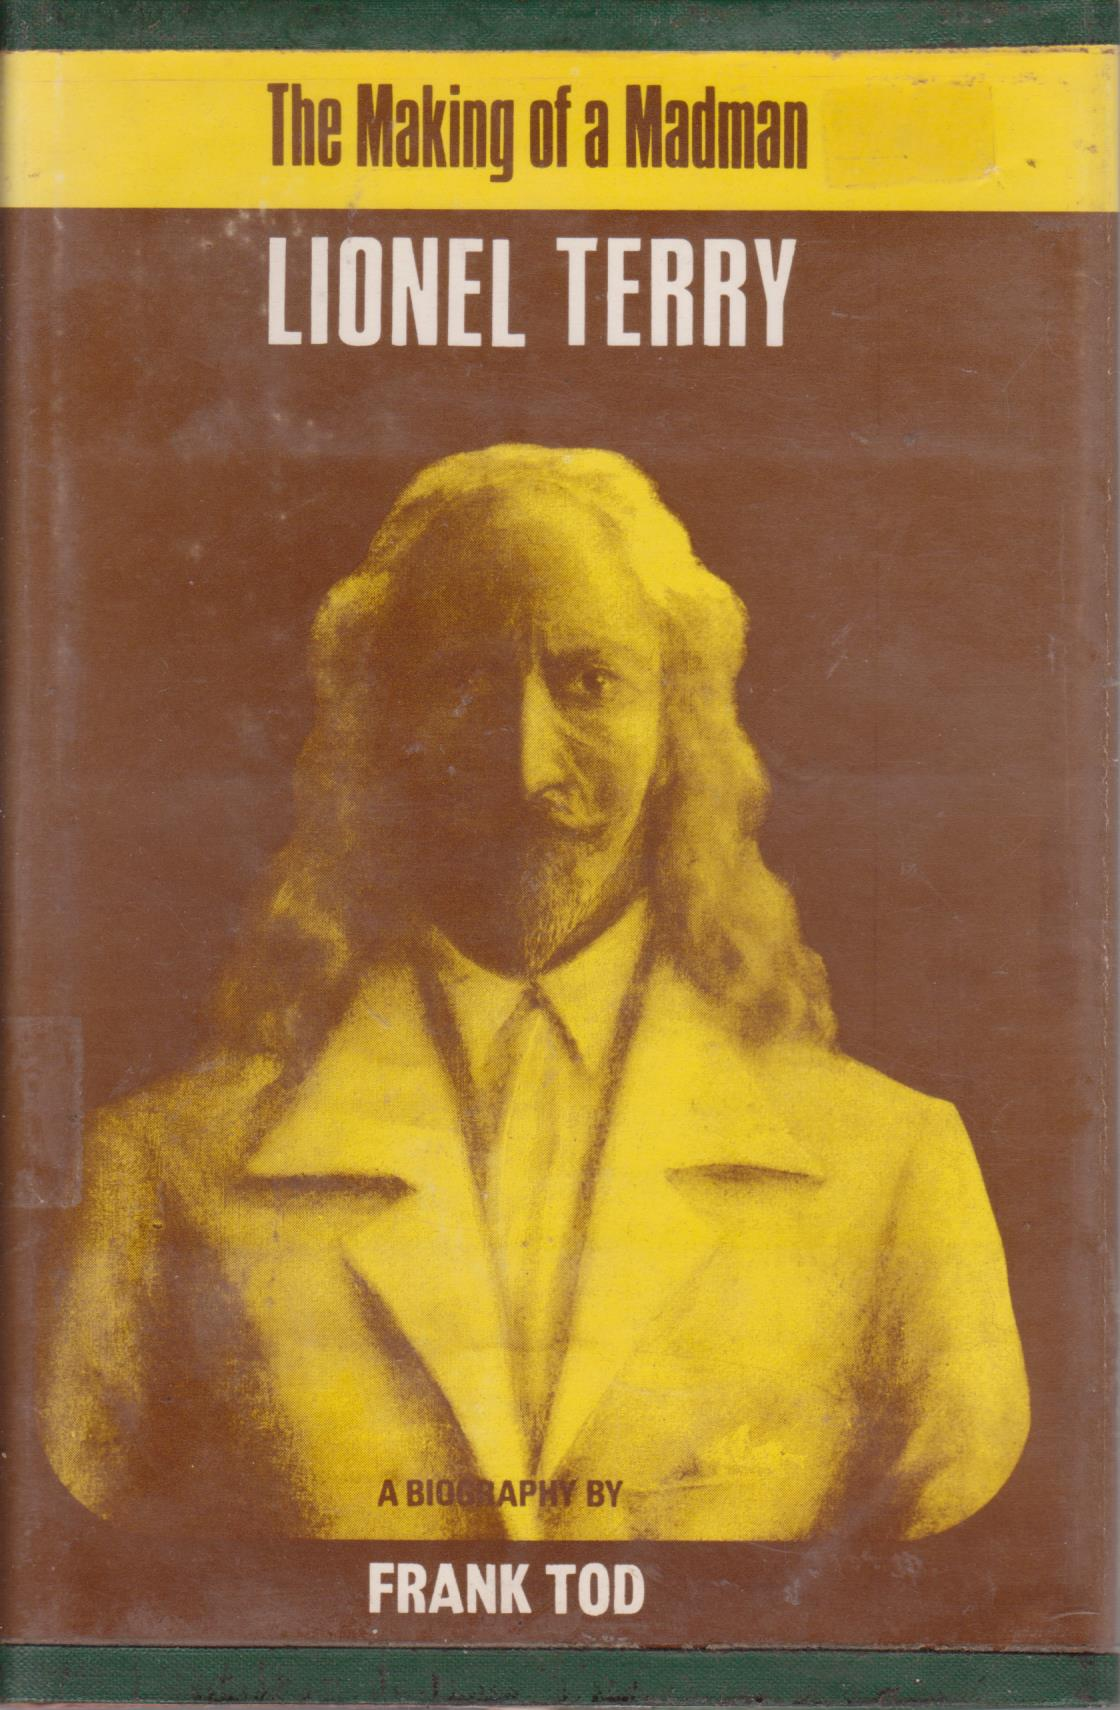 cover image of The Making of a Madman, Lionel Terry, a Biography, for sale in New Zealand